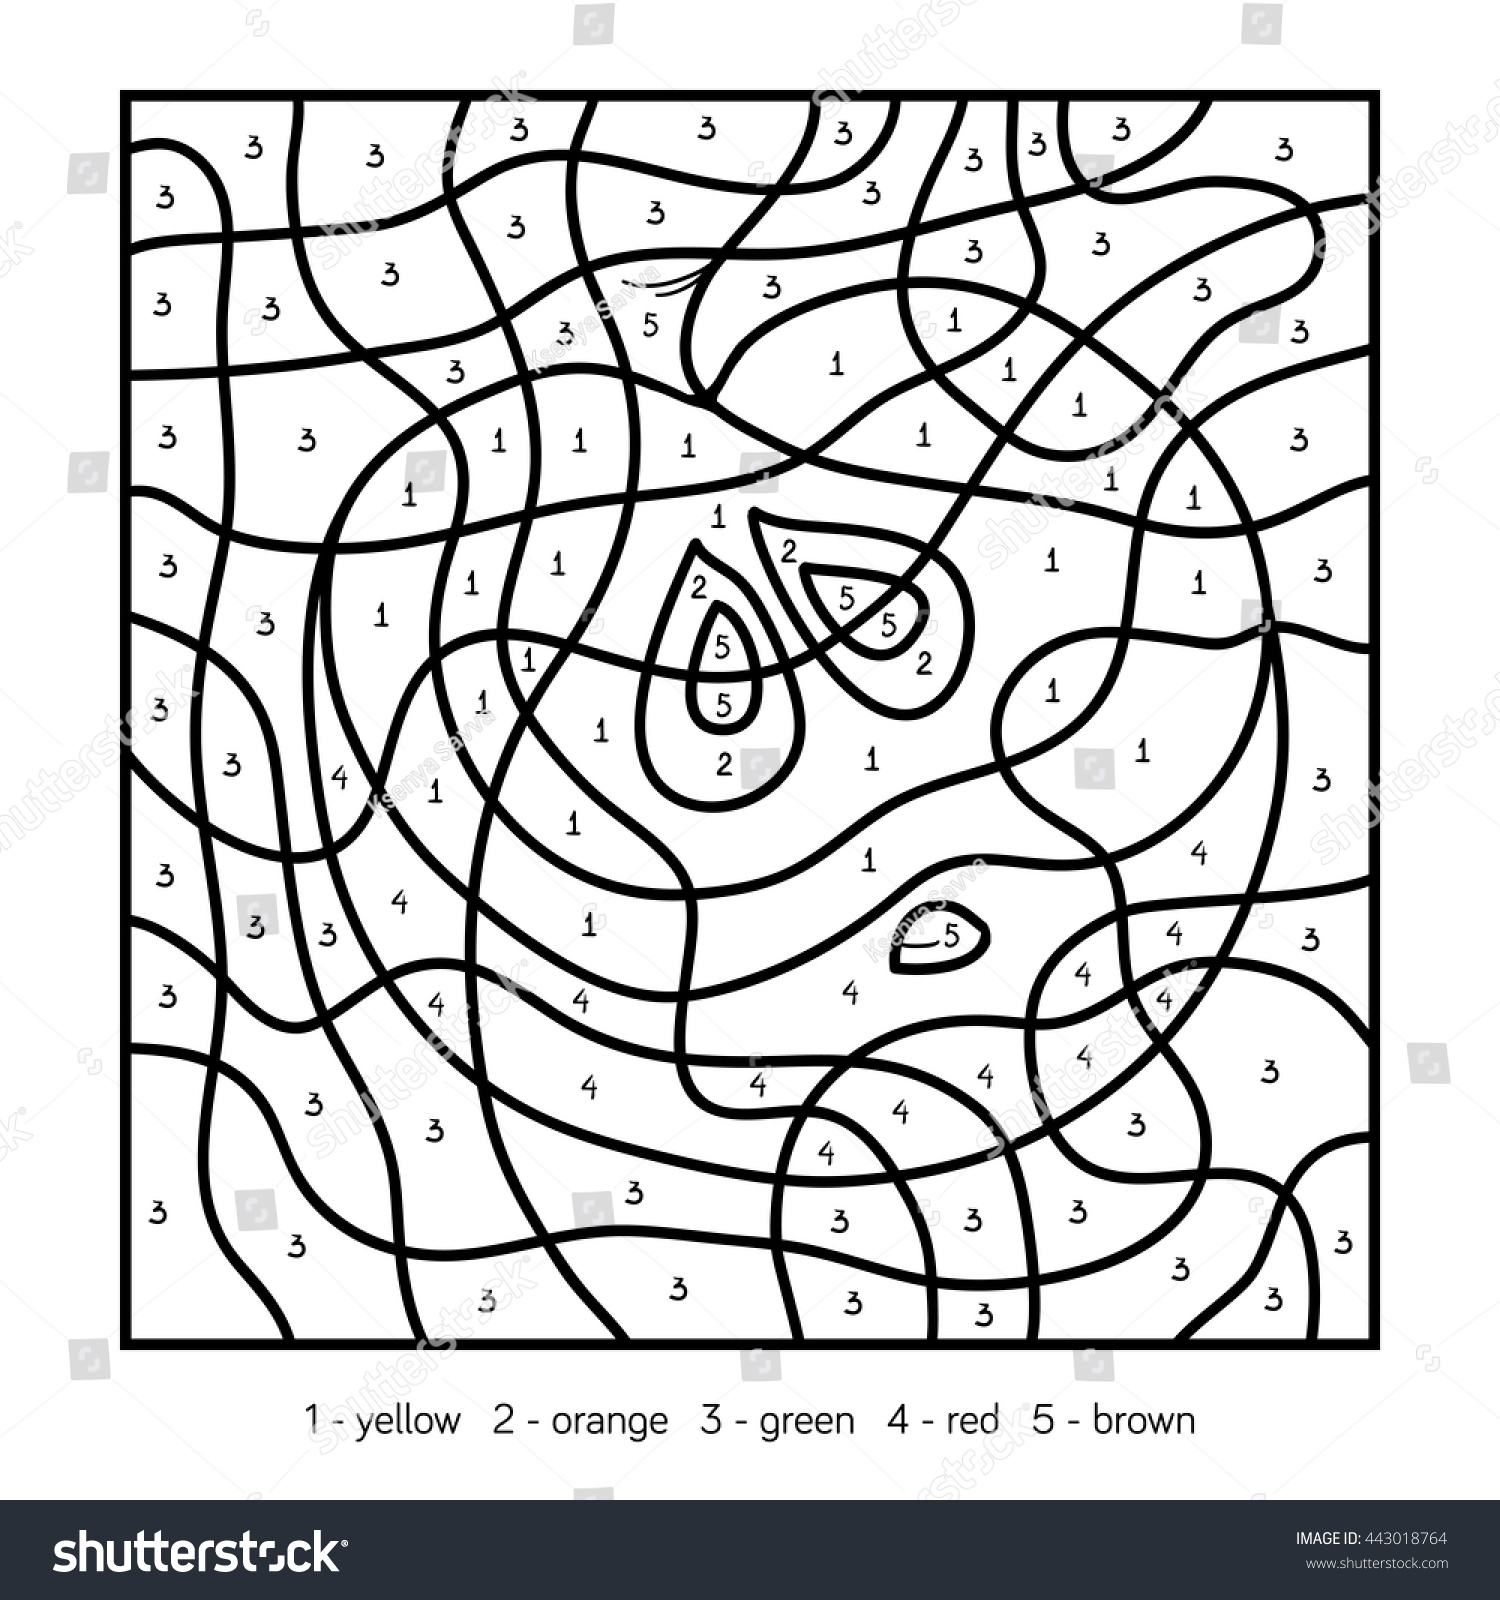 Game color by numbers - Color By Number Education Game For Children Coloring Page Fruits And Vegetables